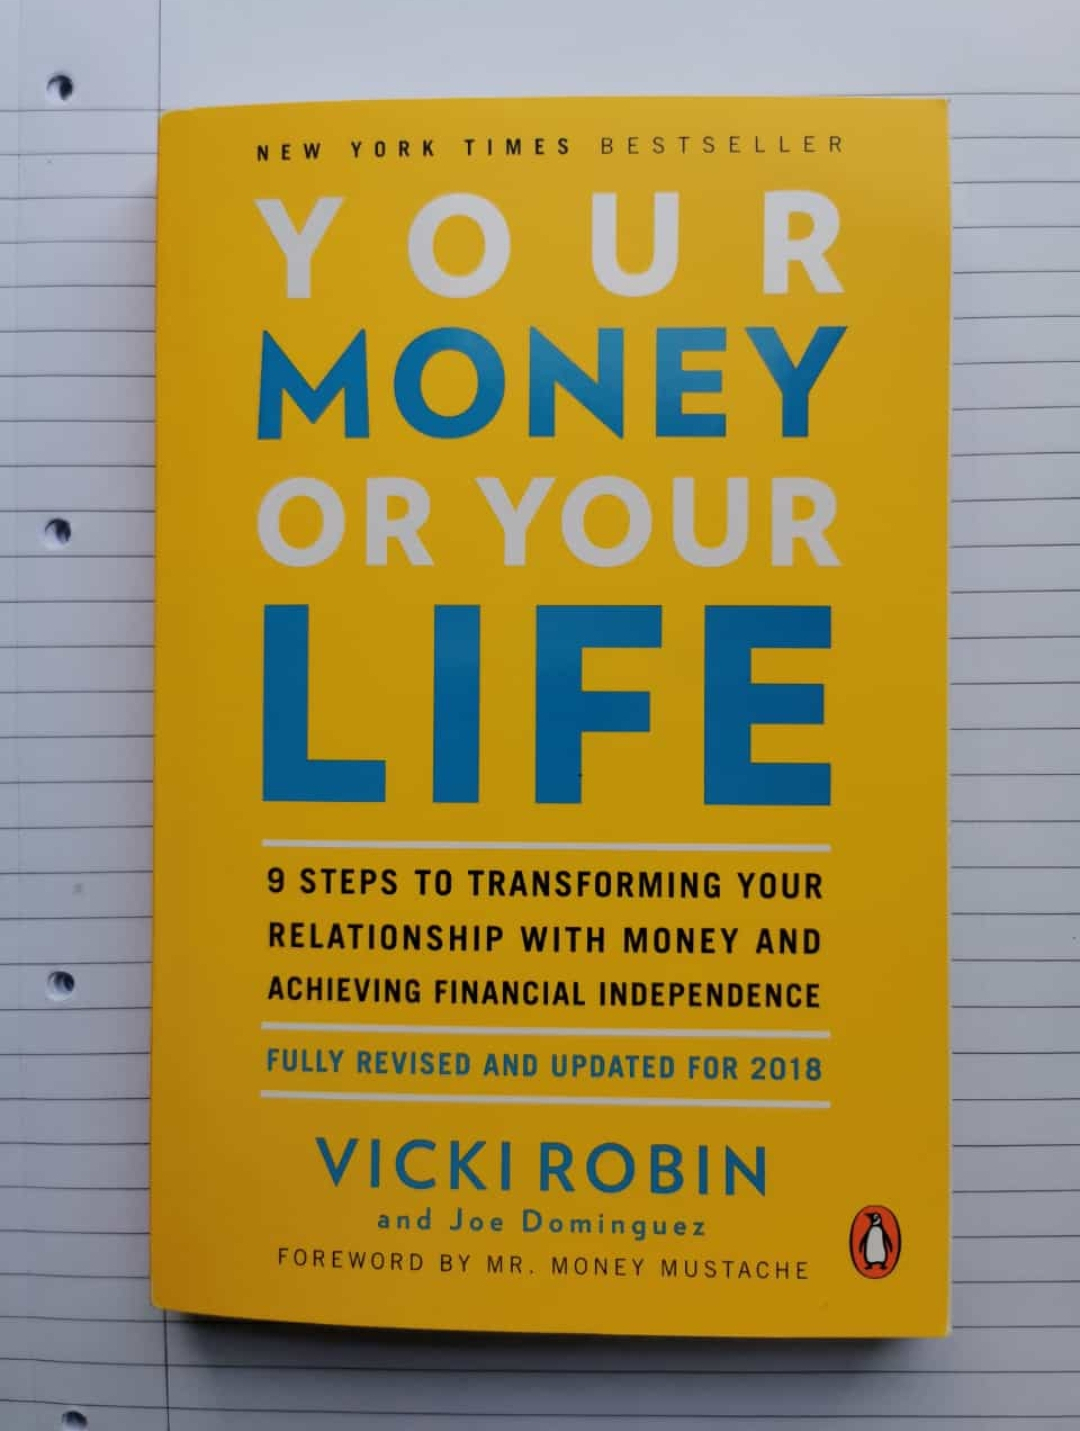 Book review - your money or your life by Vicki Robin